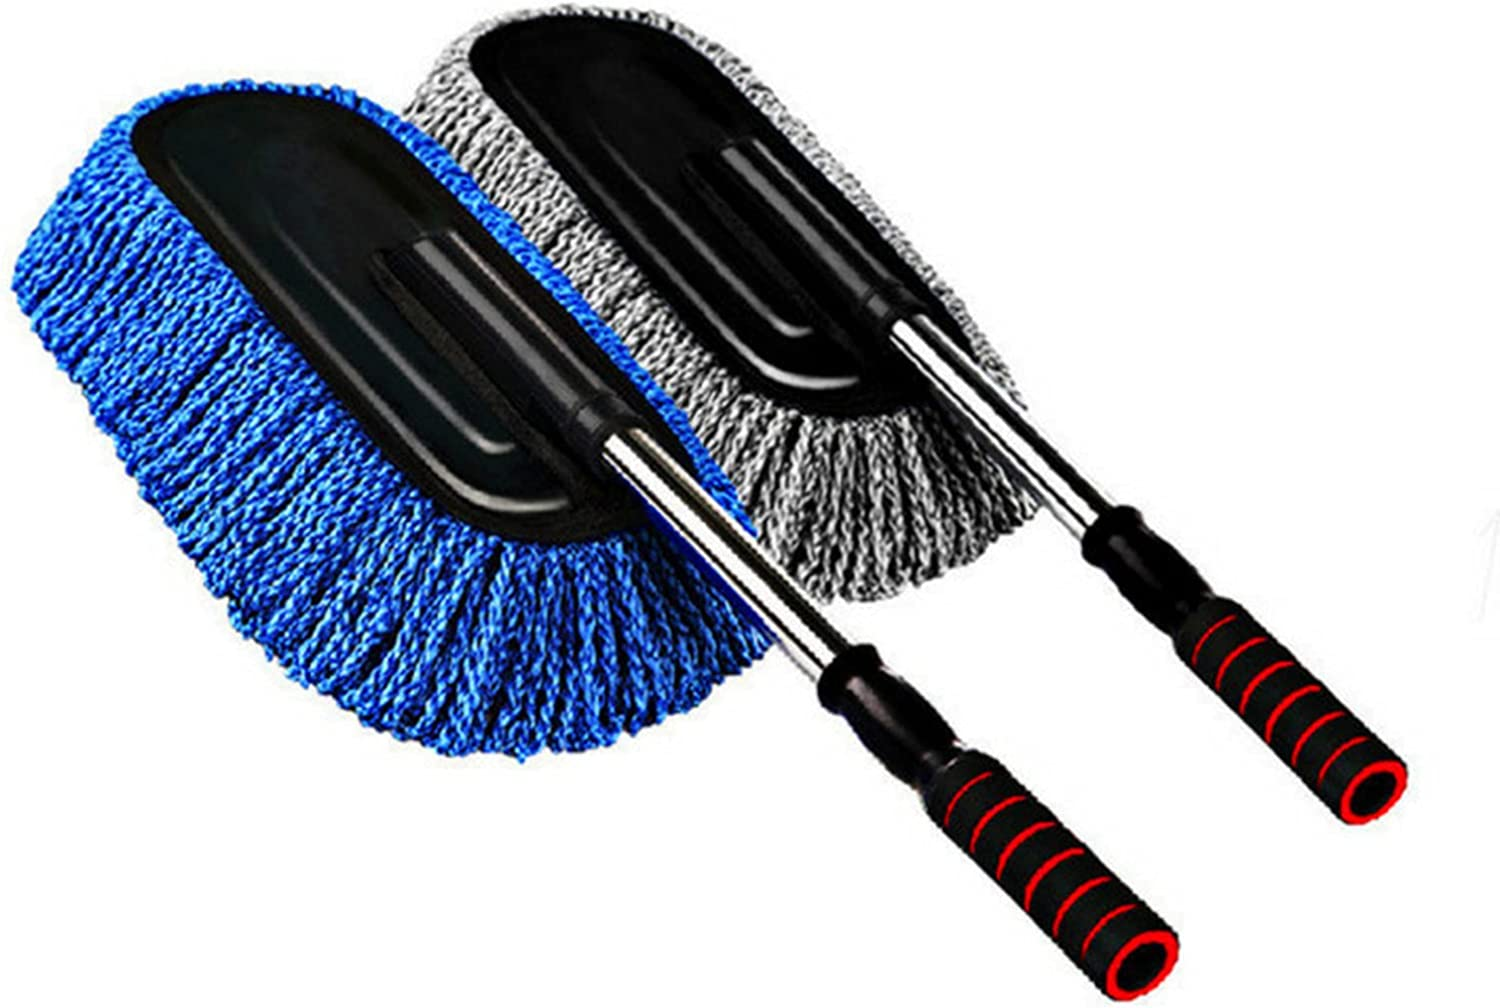 2 Pack Car Wash Brush All items in the store car Kit Mop Washer Cleaning National products B